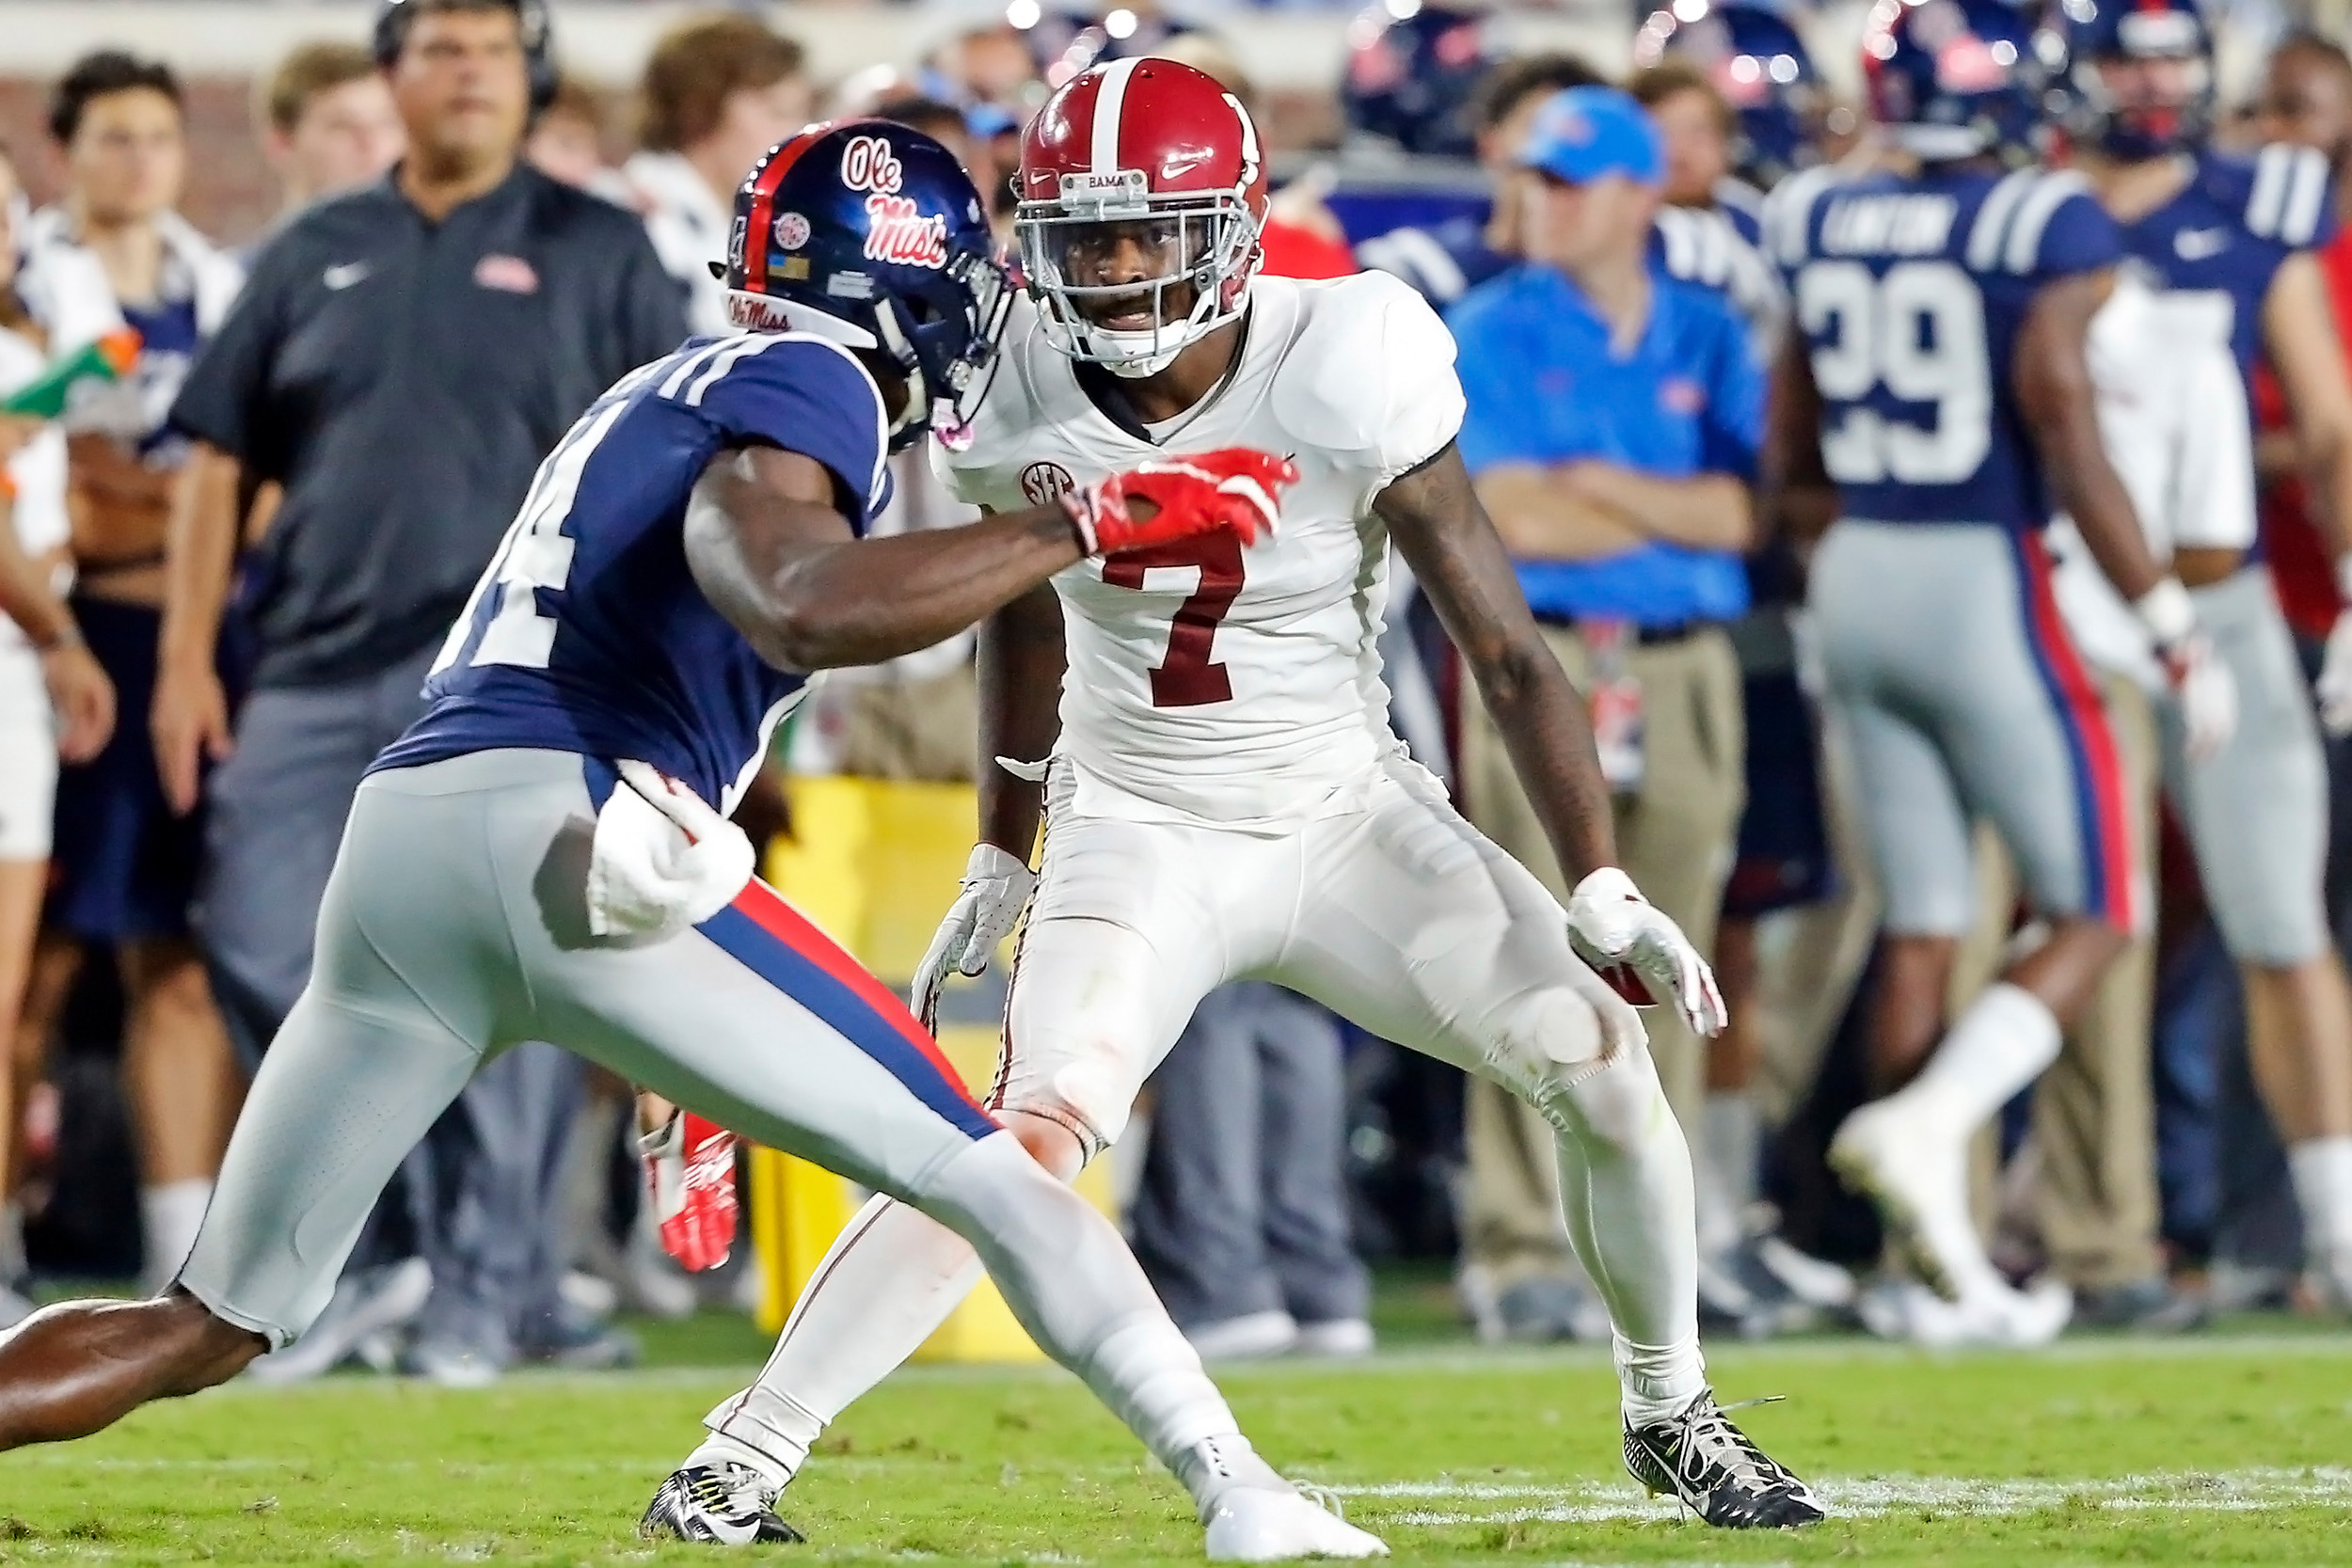 Alabama Crimson Tide defensive back Trevon Diggs (7) during the game between the University of Alabama and Ole Miss at Vaught-Hemingway Stadium. Jason Clark / Daily Mountain Eagle